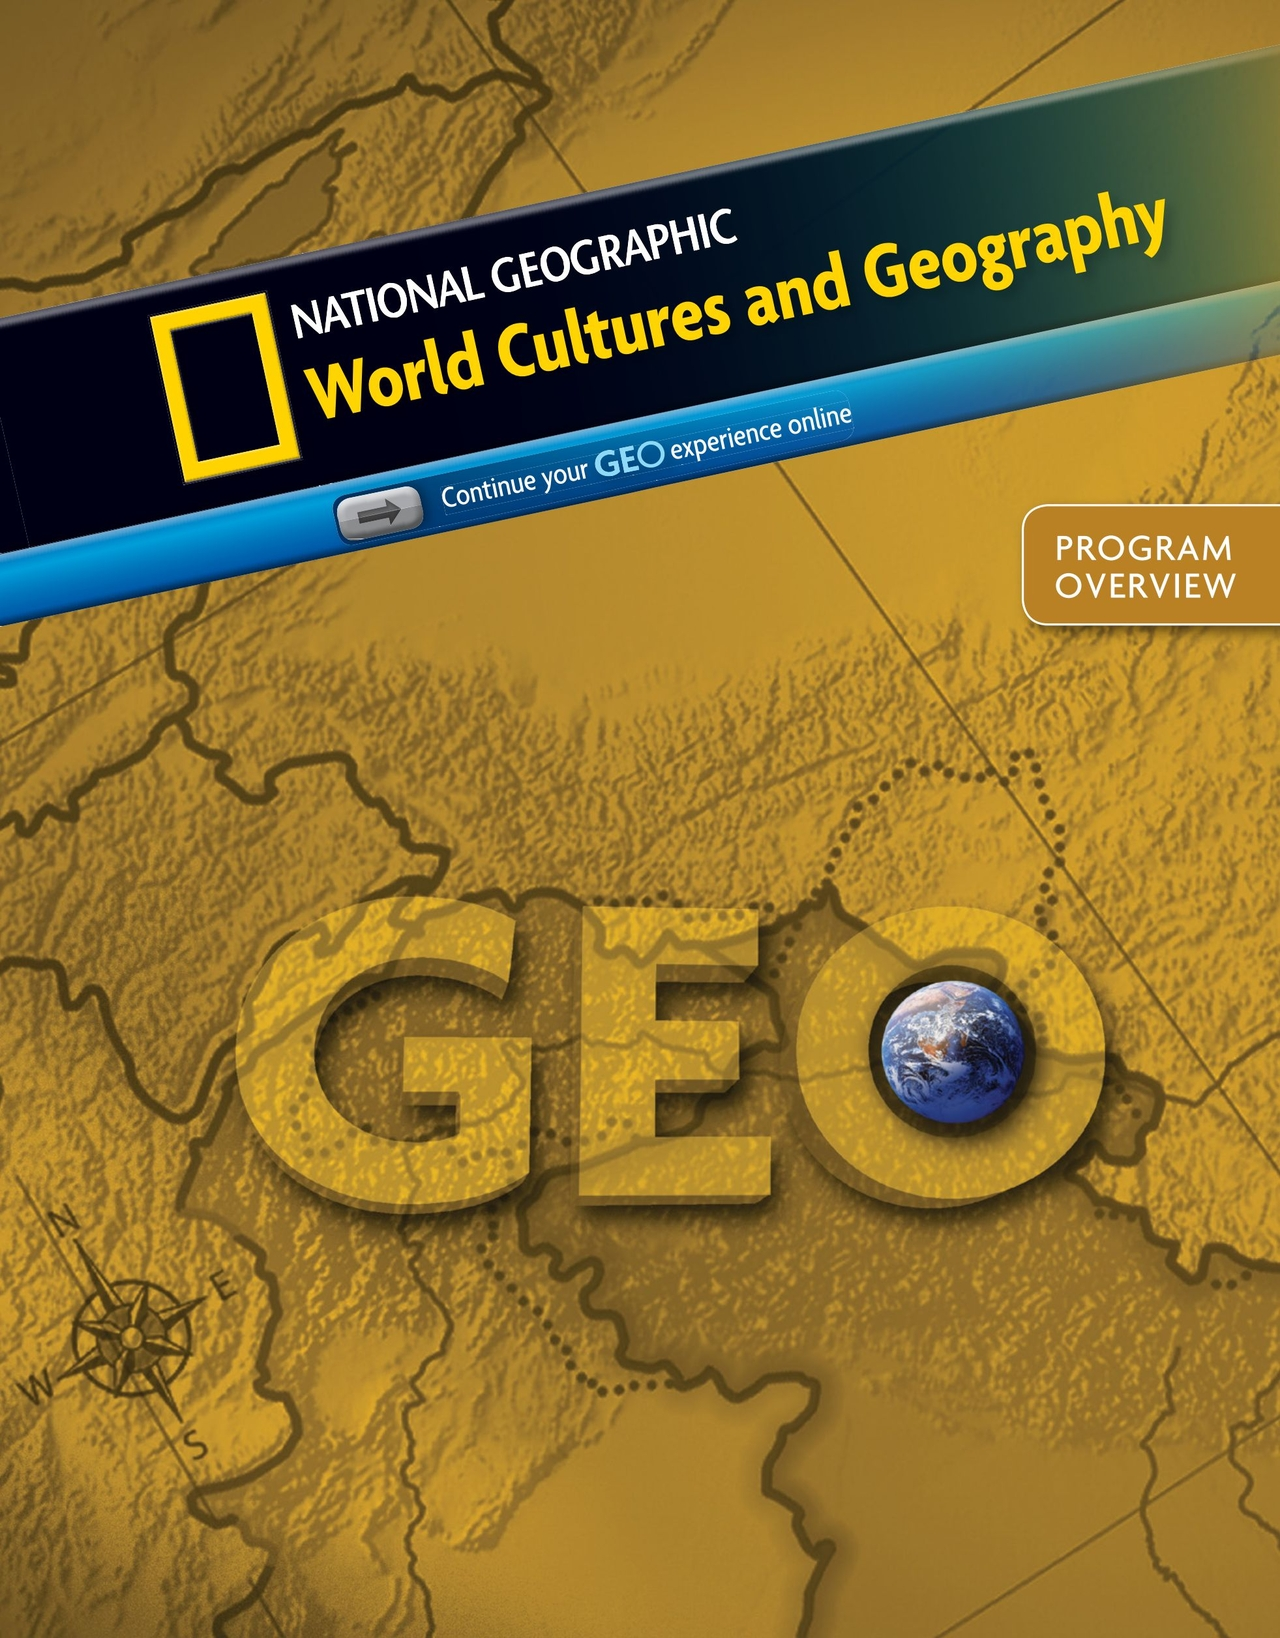 National Geographic World Cultures and Geography